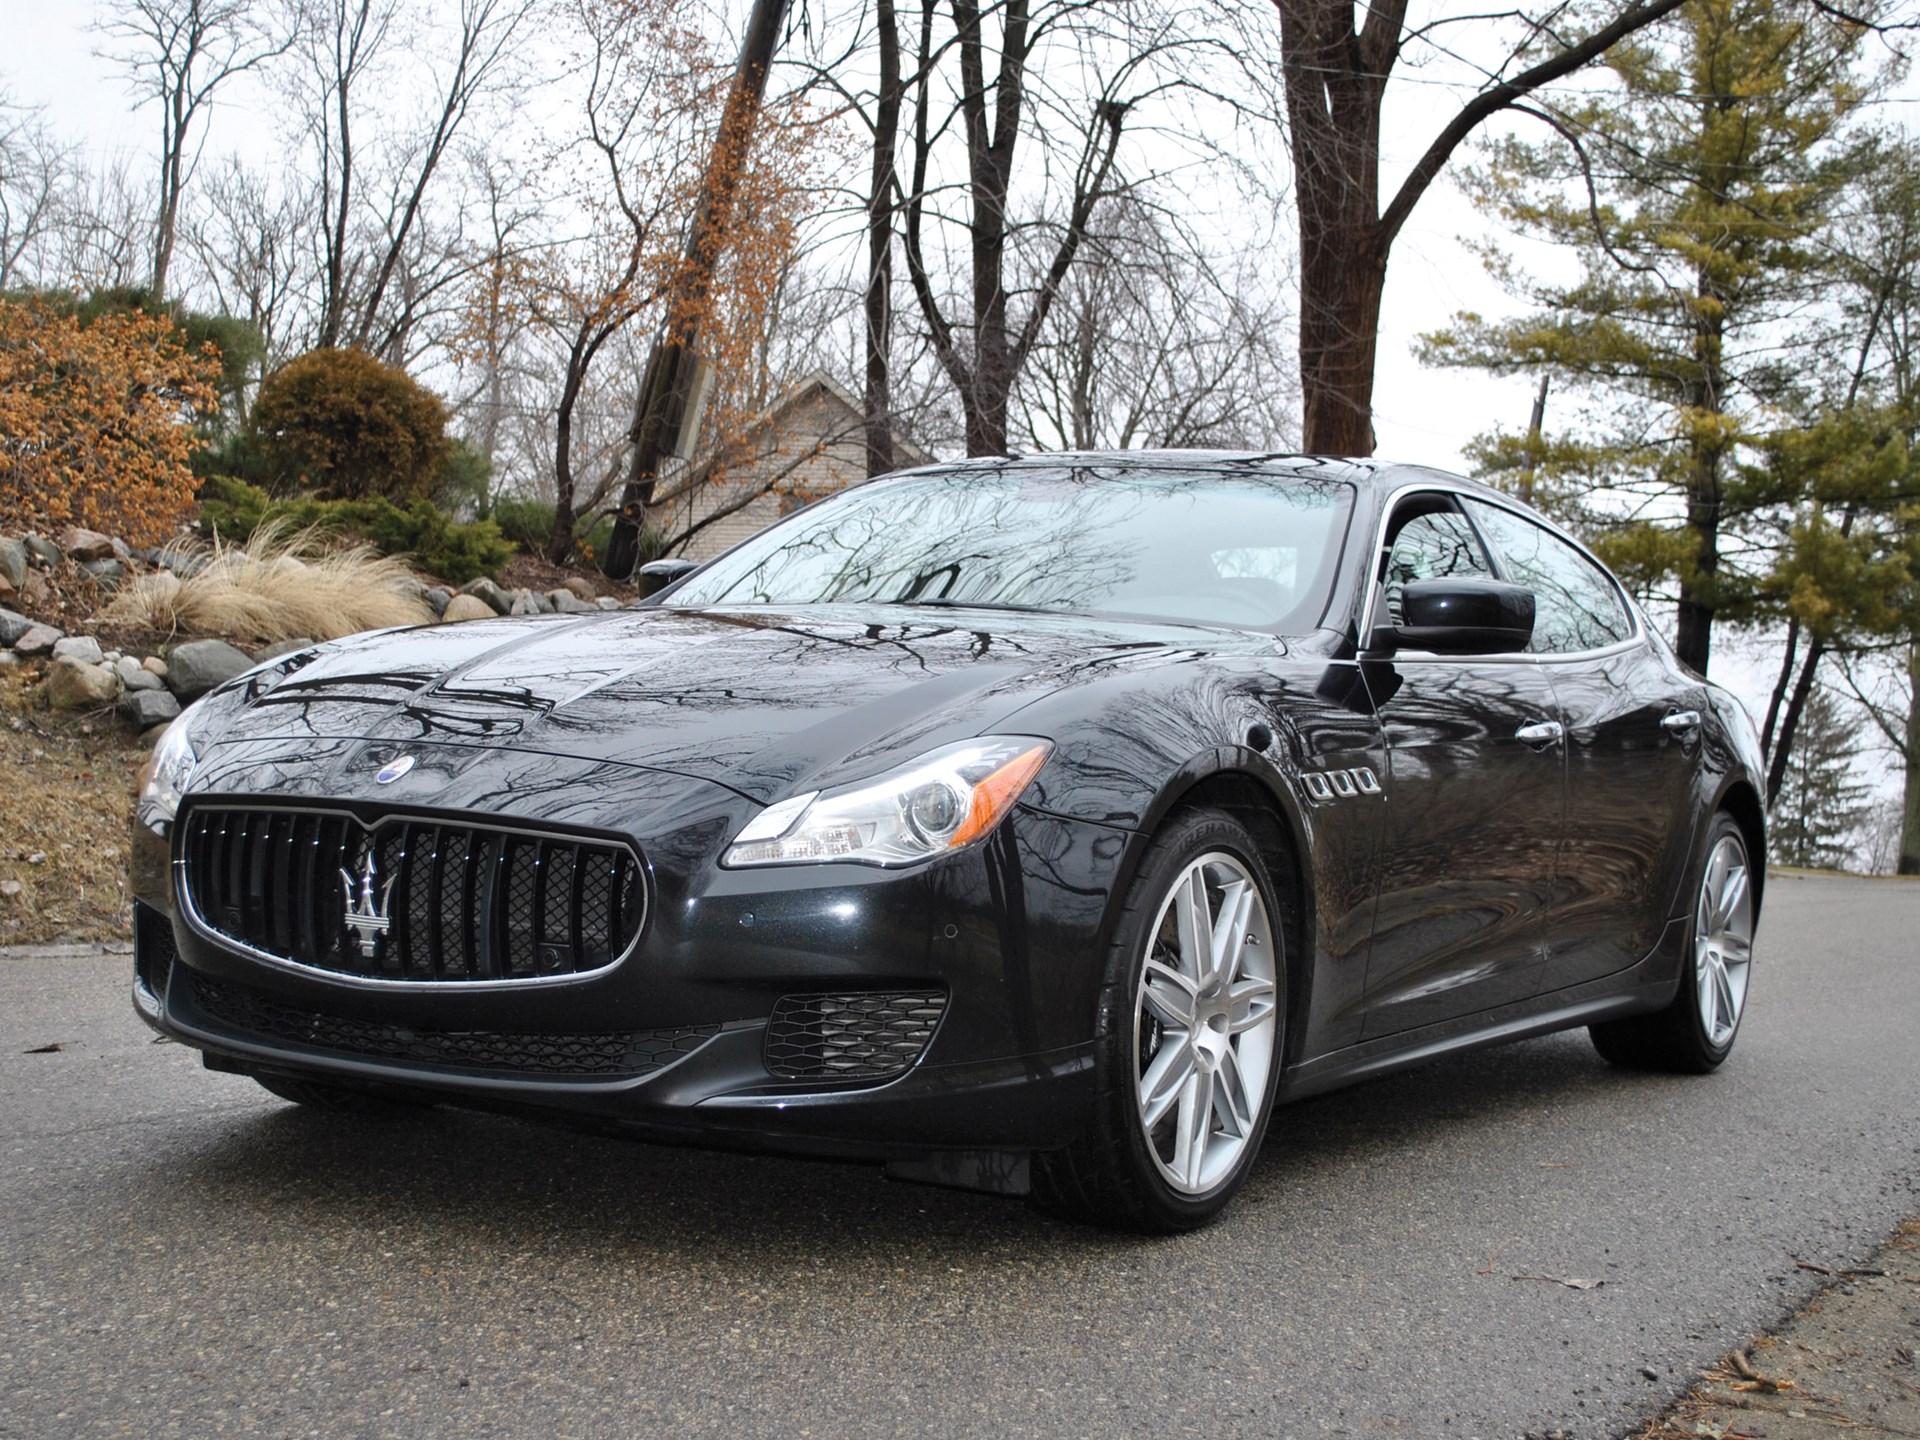 rm sotheby 39 s 2014 maserati quattroporte gts auburn. Black Bedroom Furniture Sets. Home Design Ideas